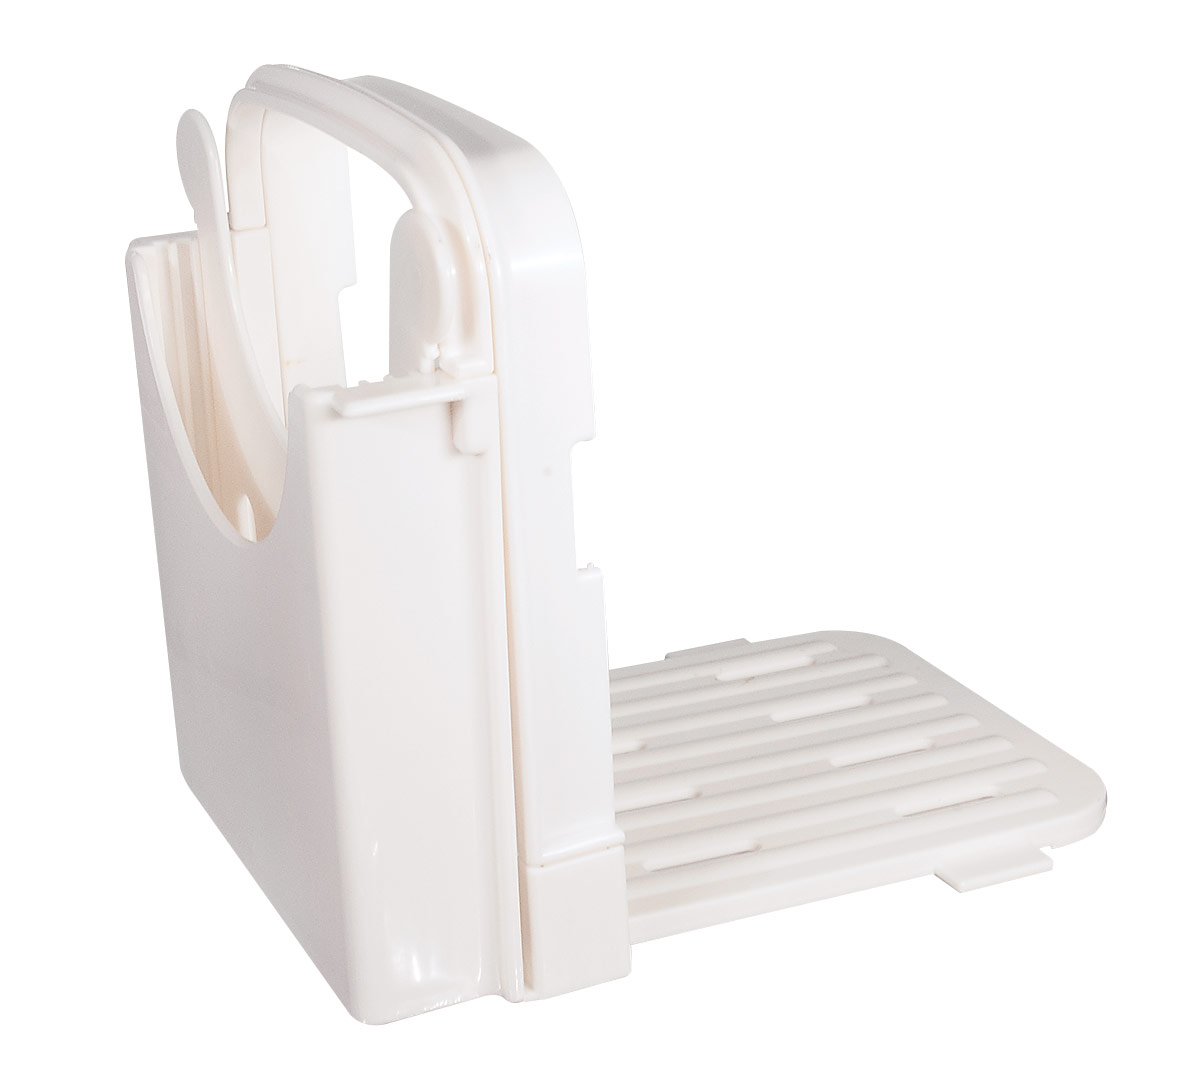 Bread Slicer Safety Cutter